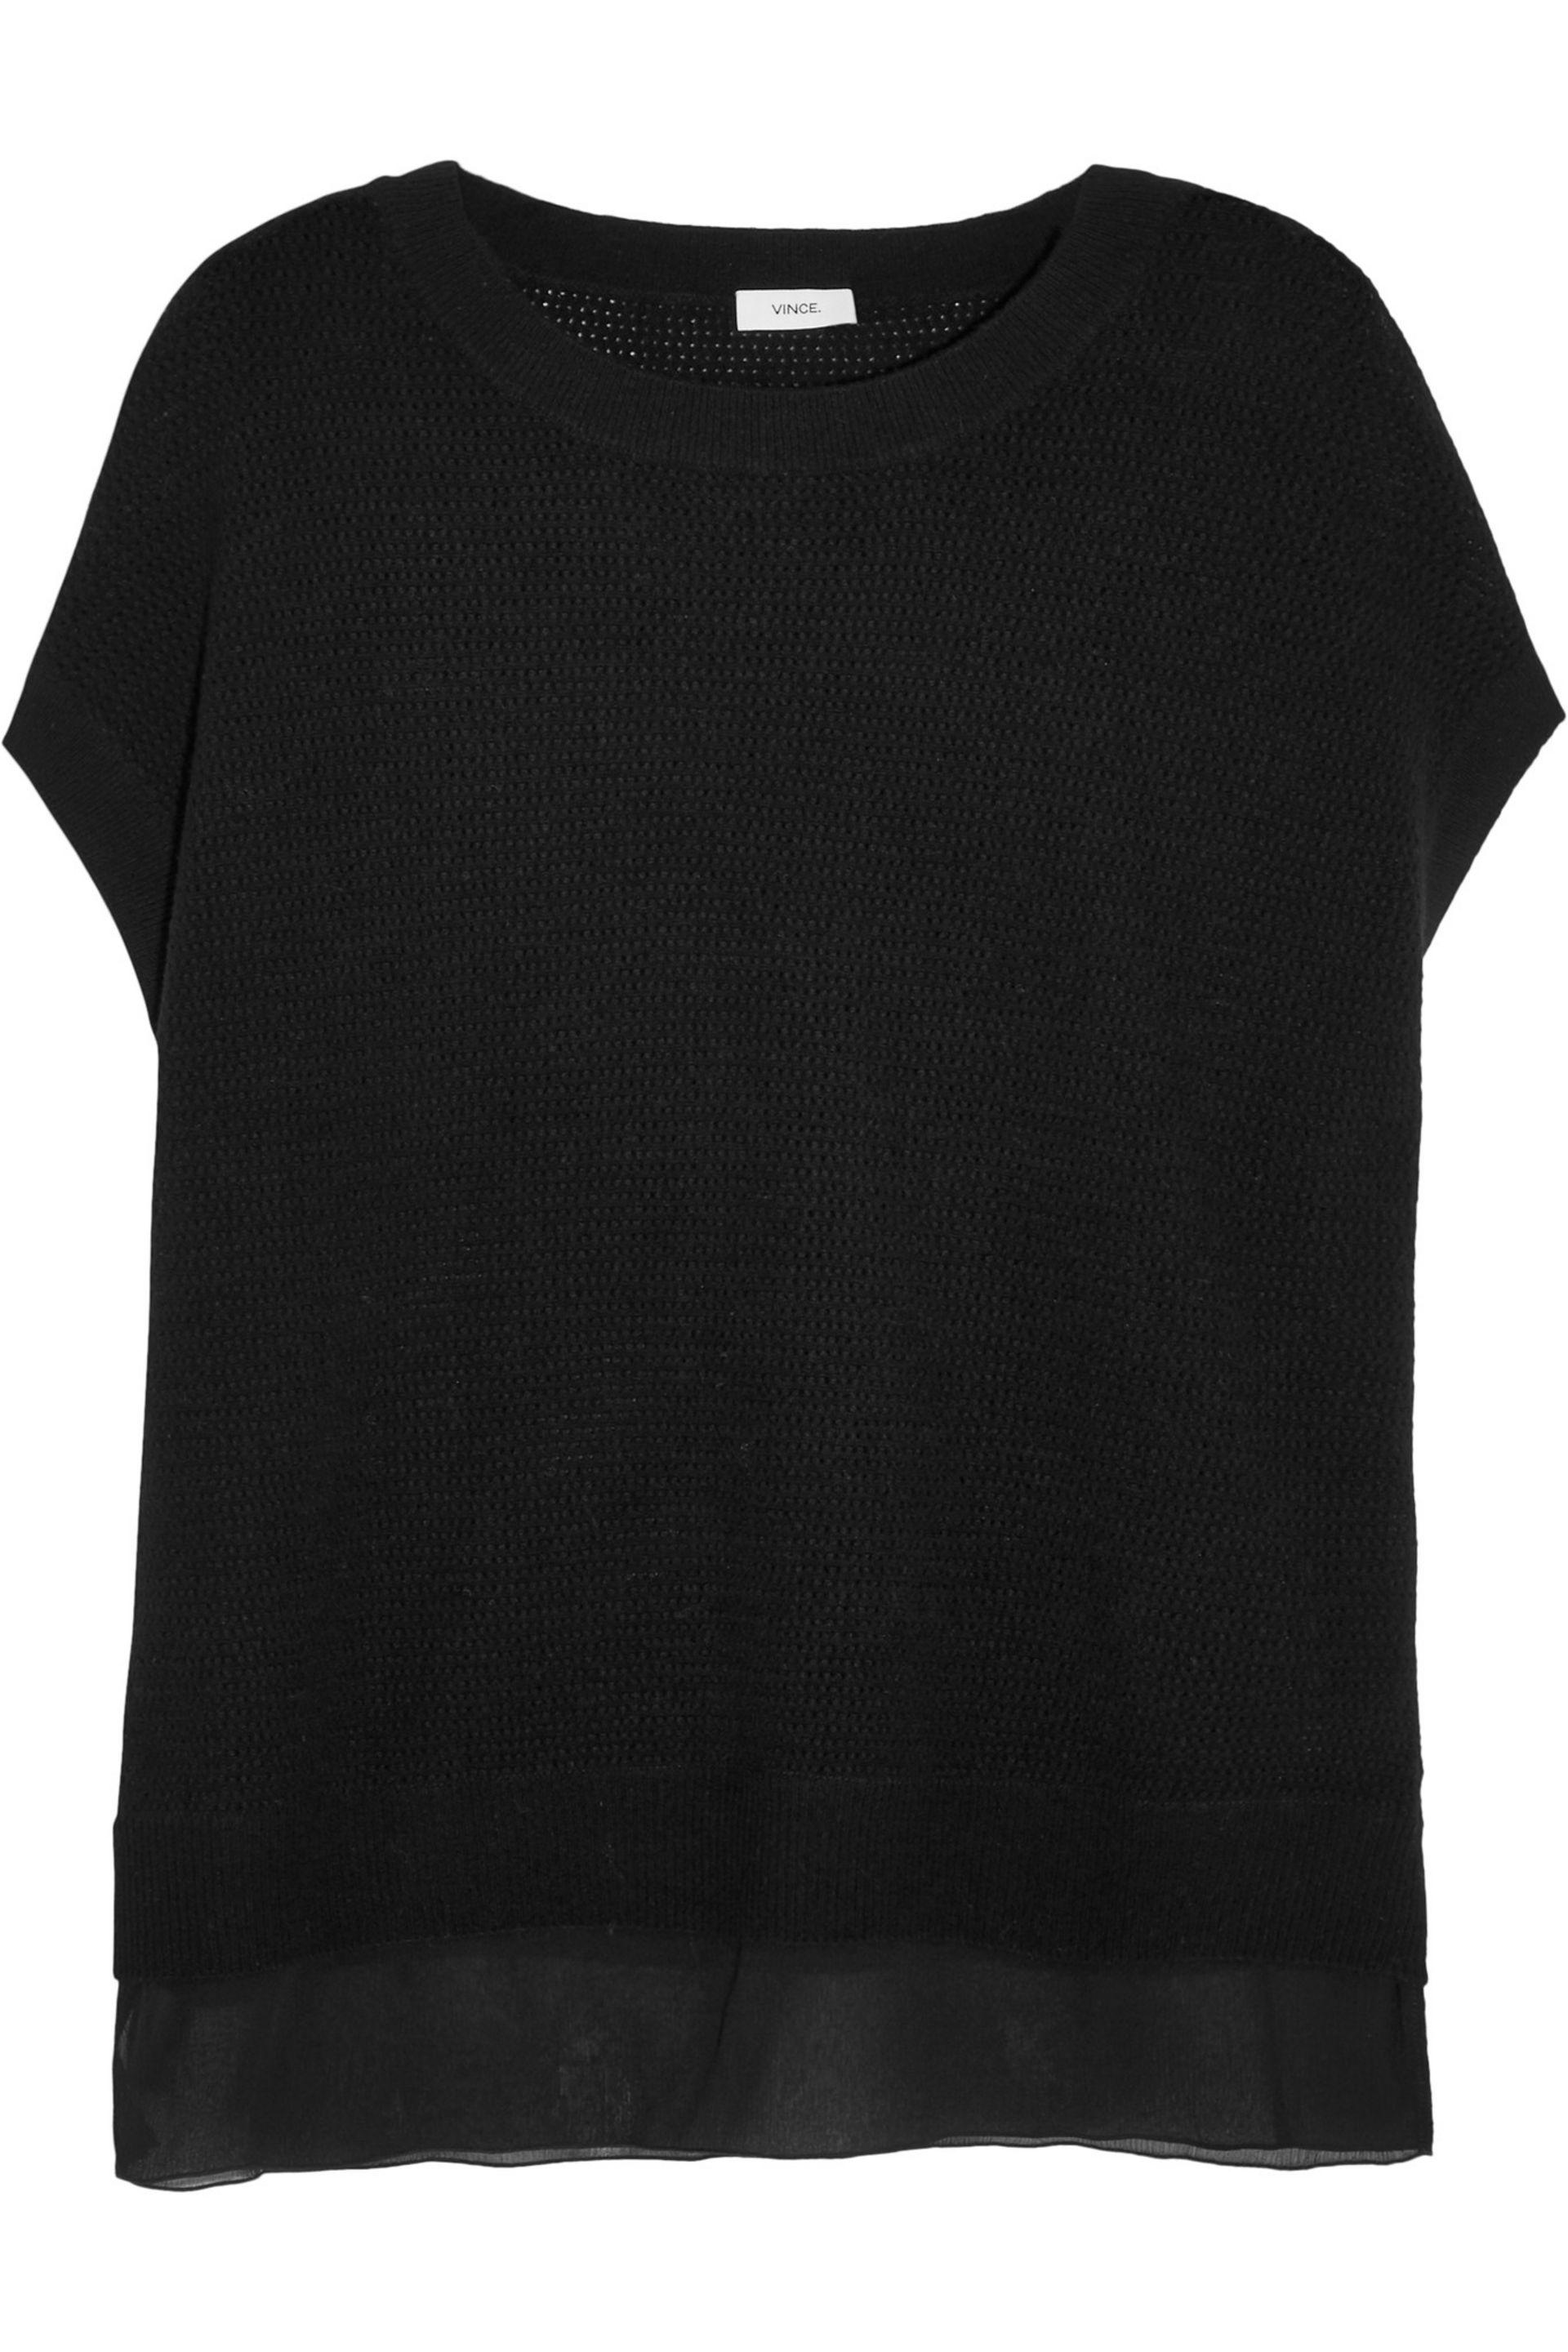 Vince. Women's Black Silk-crepe And Pointelle-knit Wool And Cashmere-blend  Jumper